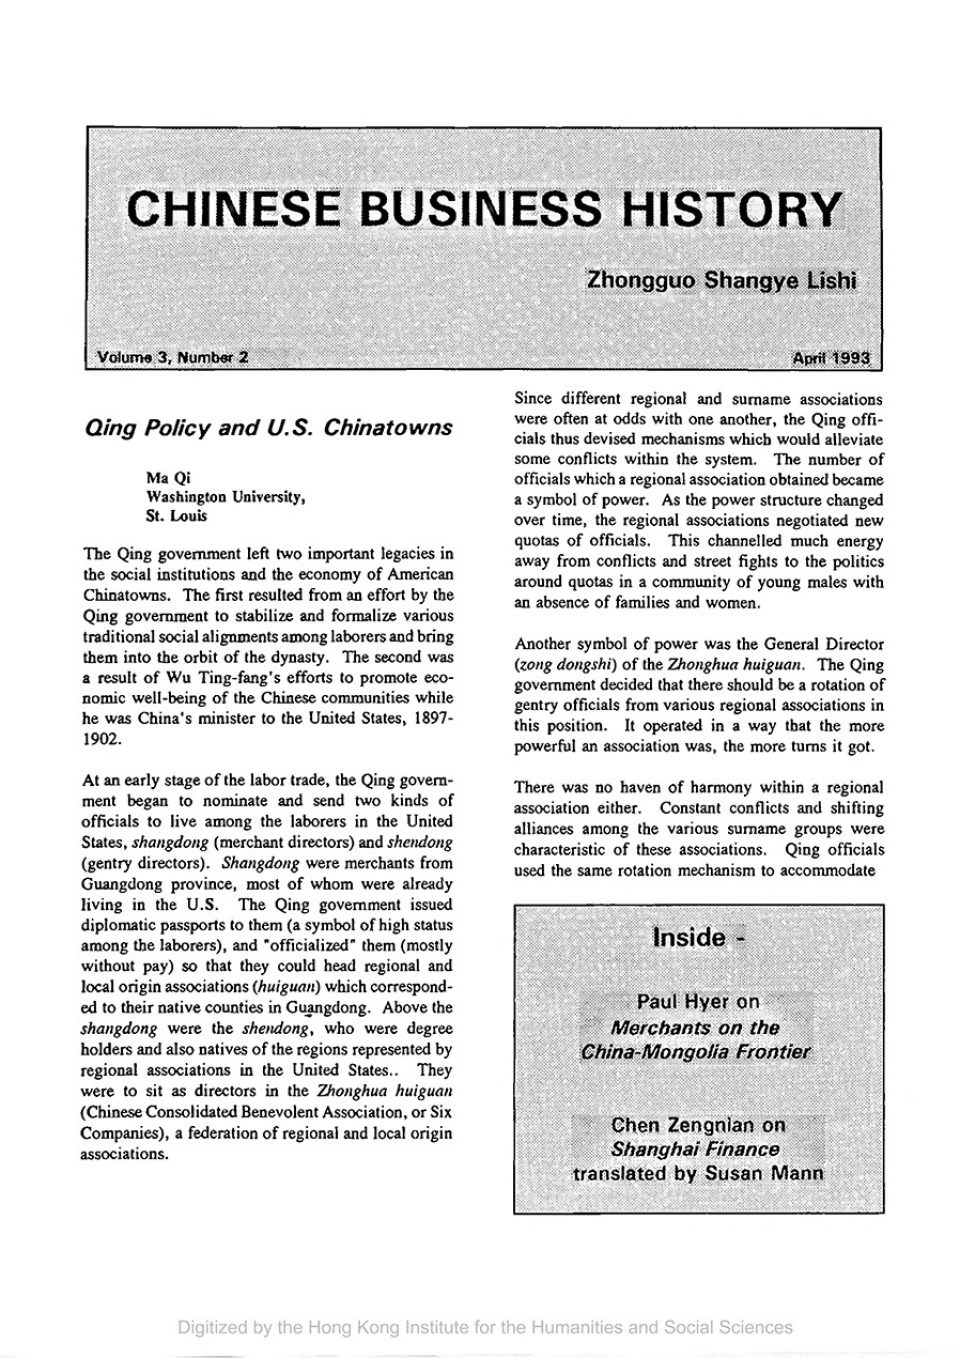 Cover of Chinese Business History Journal Volume 3, Number 2